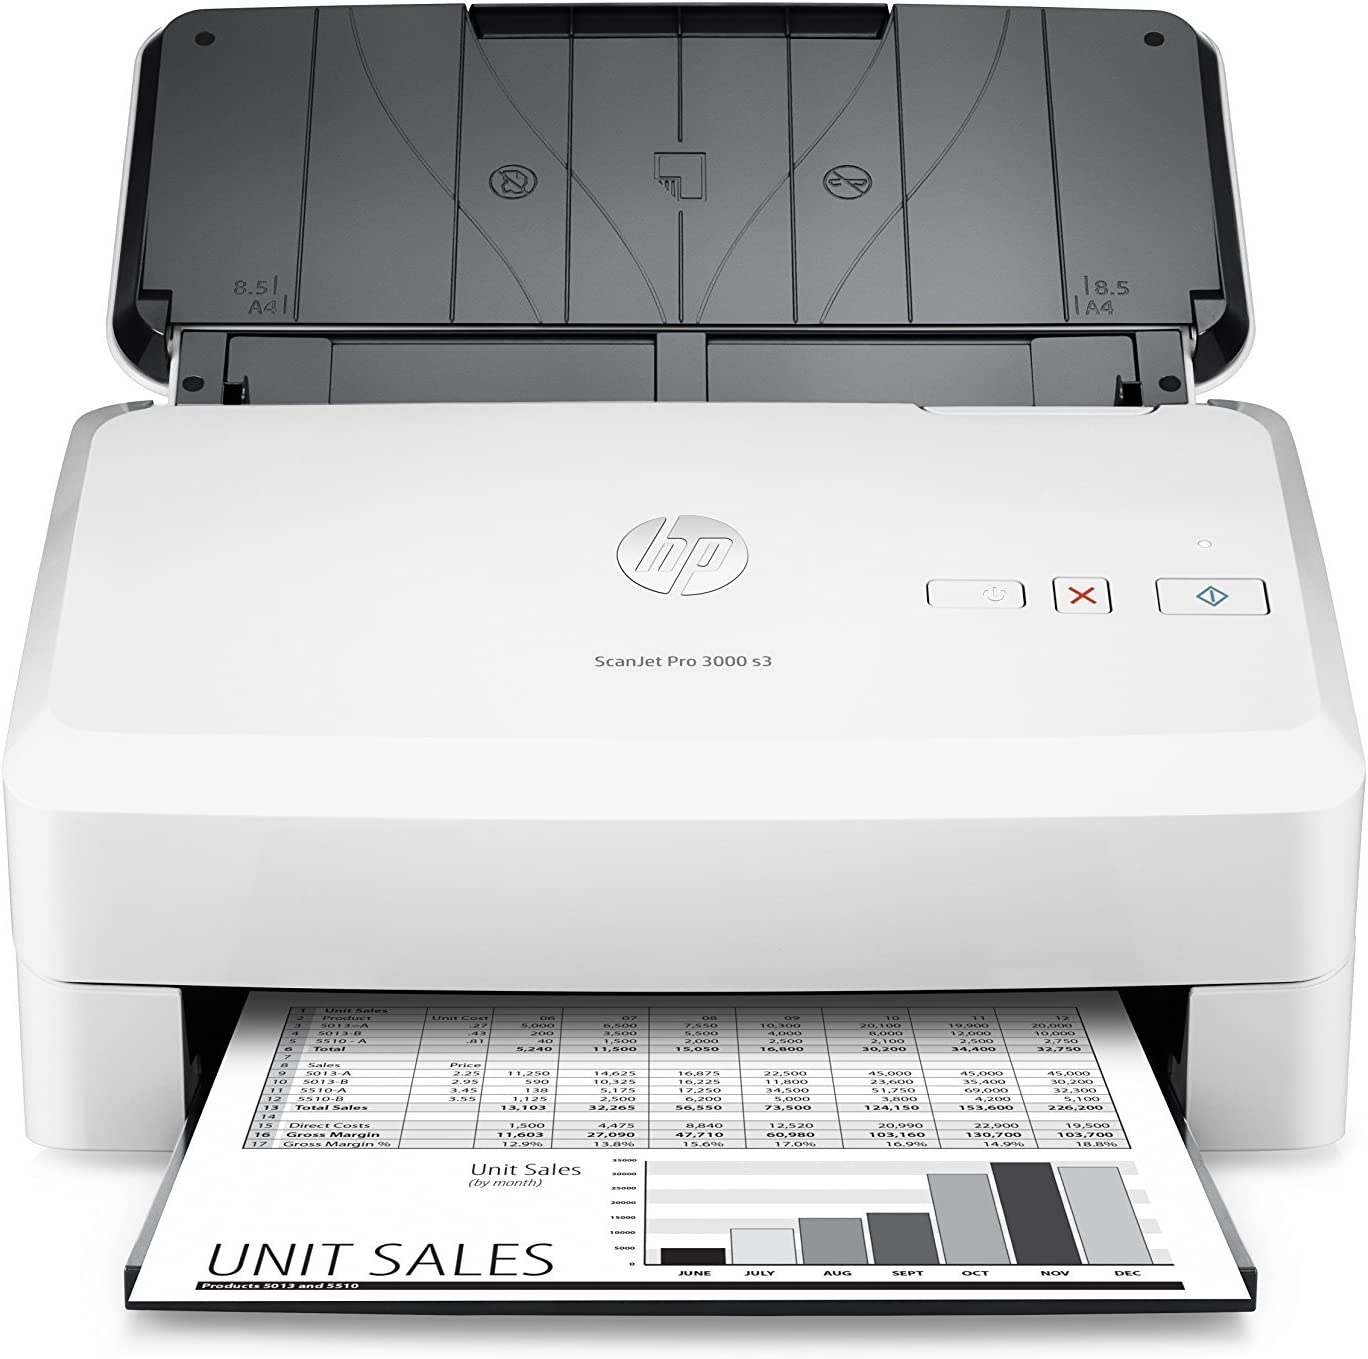 HP ScanJet Pro 3000 s3 Sheet-feed OCR Scanner (Renewed)